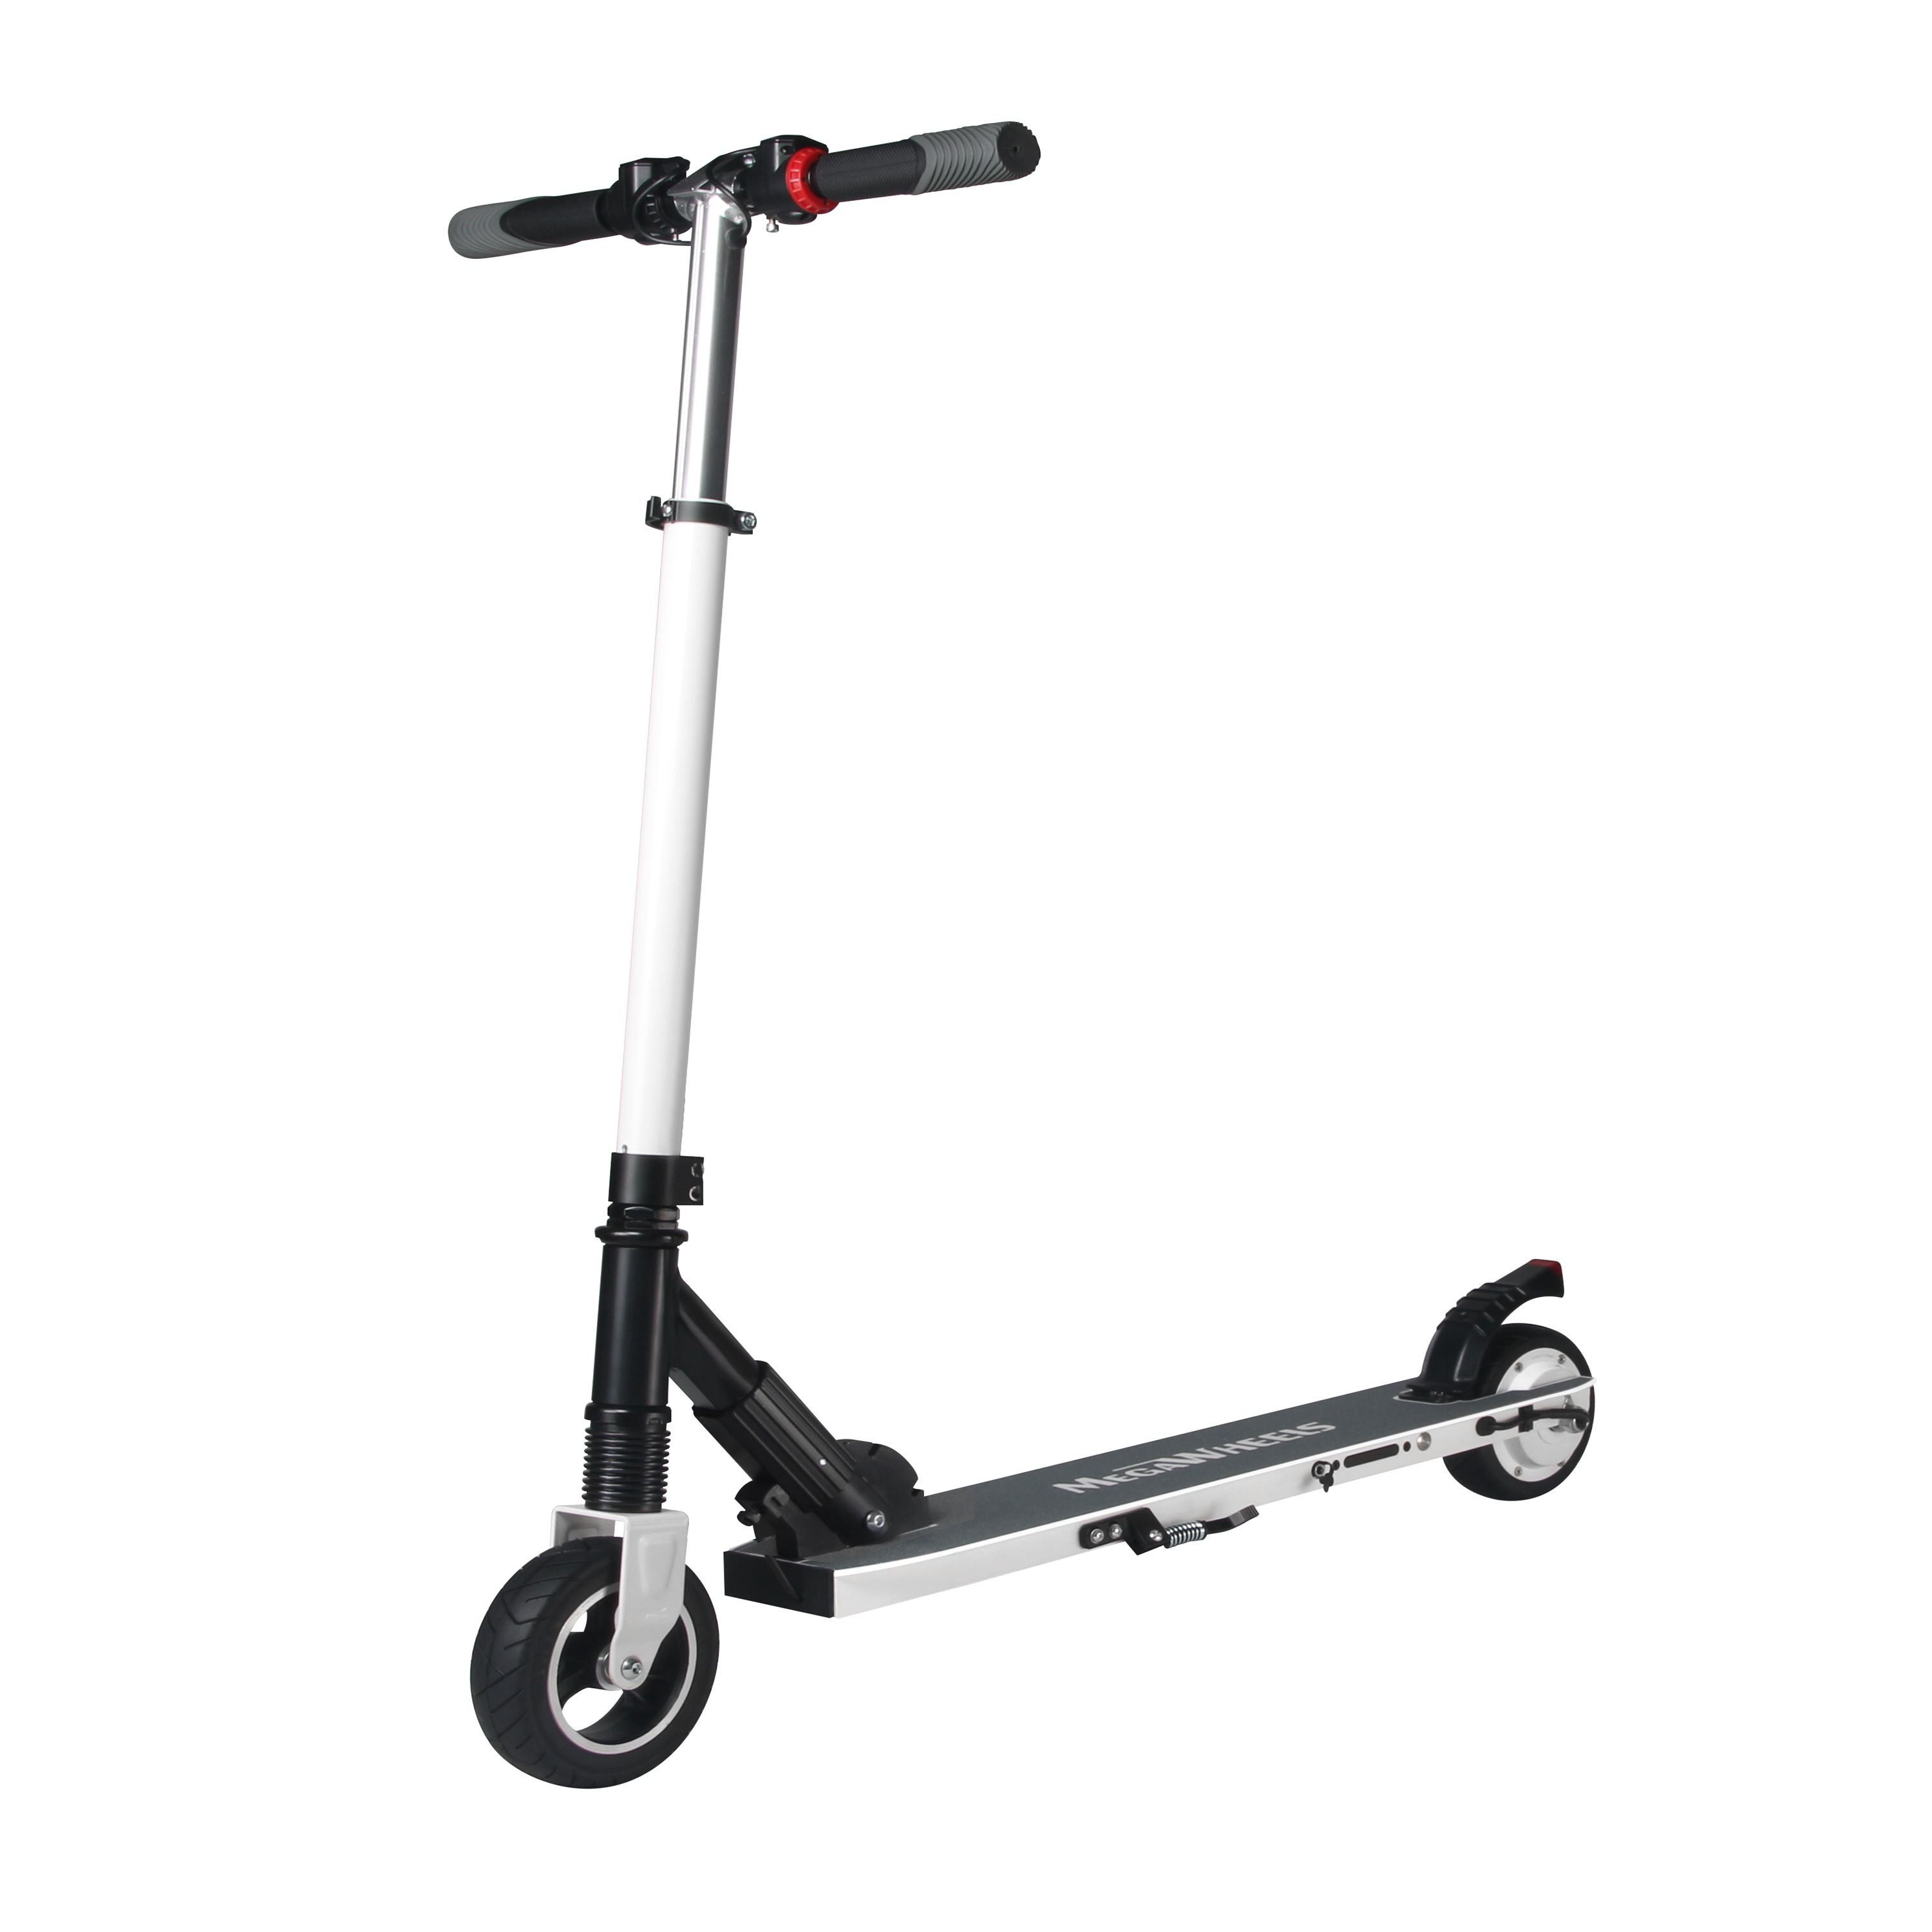 megawheels s1 5 5 elektro scooter e scooter faltbar 250w. Black Bedroom Furniture Sets. Home Design Ideas